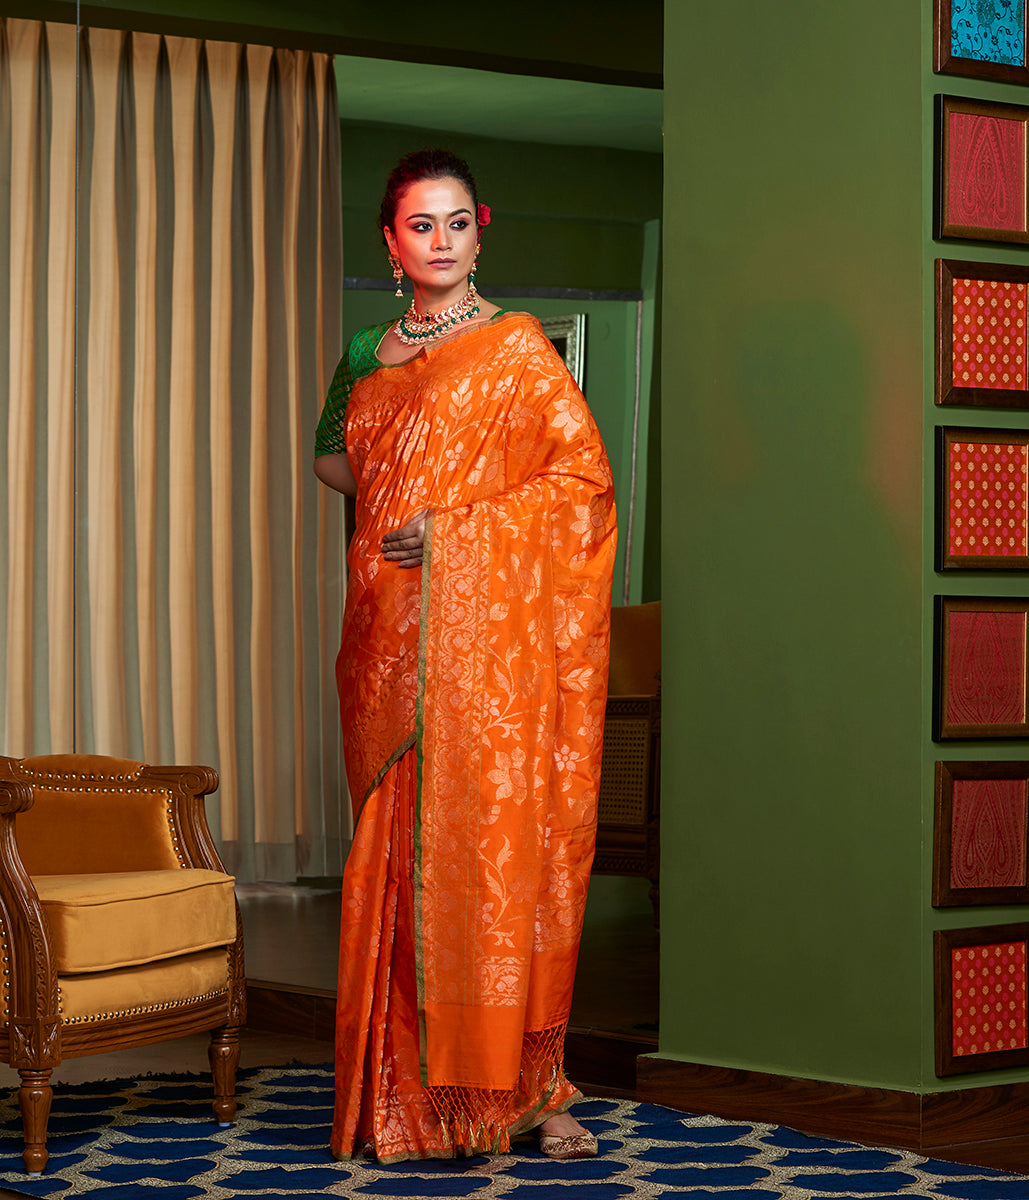 Handwoven Bridal Banarasi Jangla in Orange Woven with Real Zari